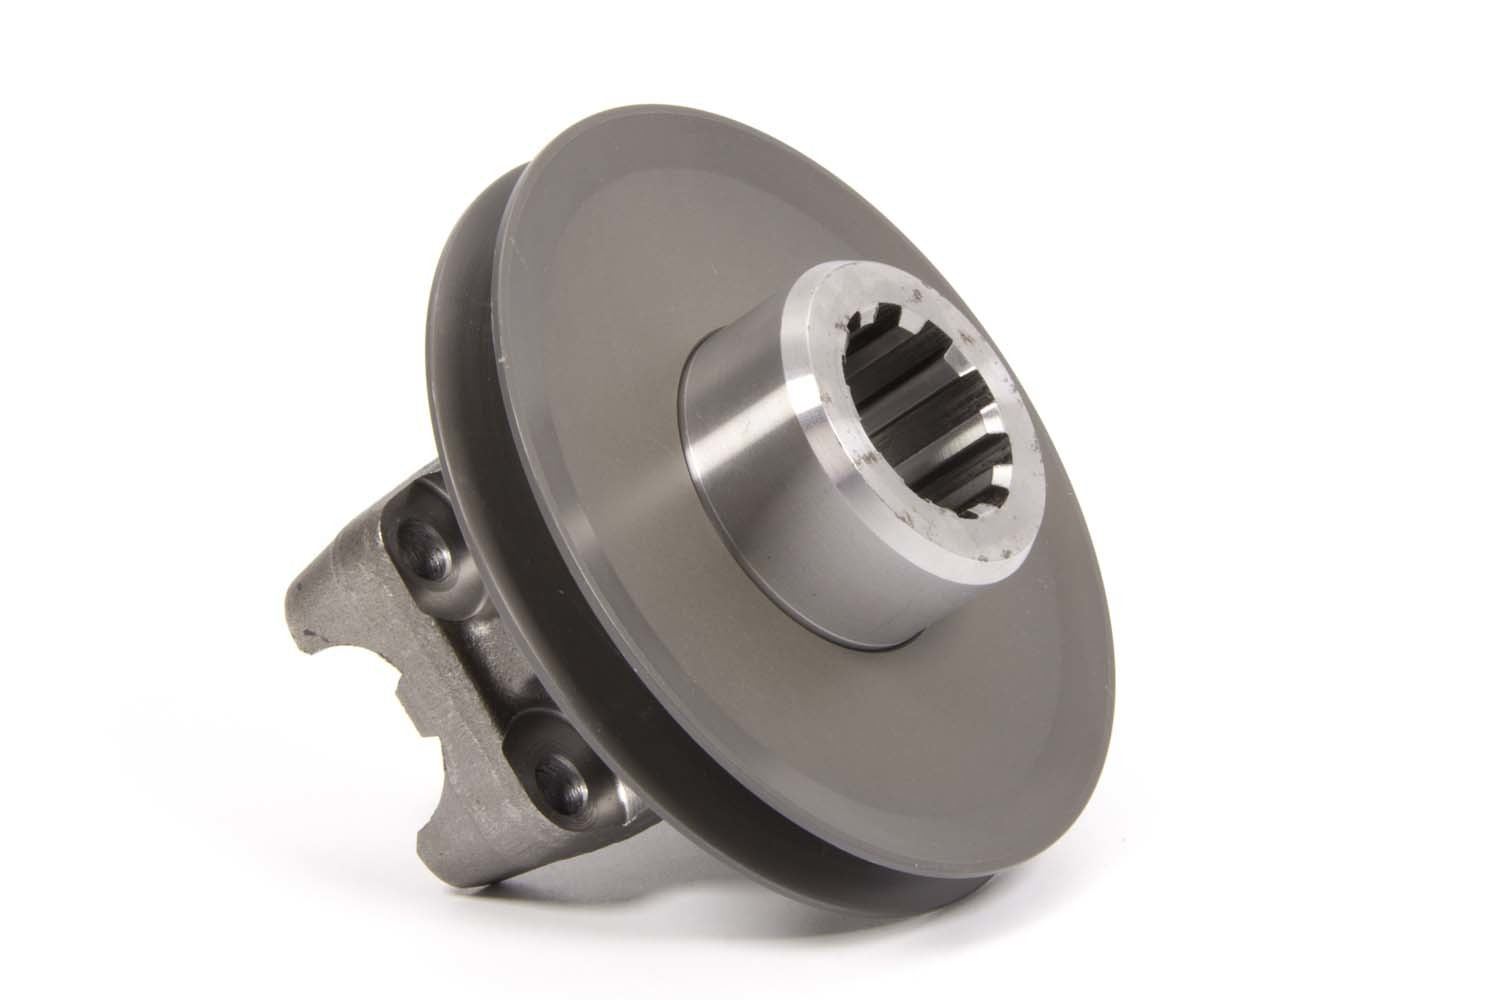 Sweet 501-30027 Pinion Yoke and Pulley, Power Steering, Sweet Quick Change Rear Mount, Each